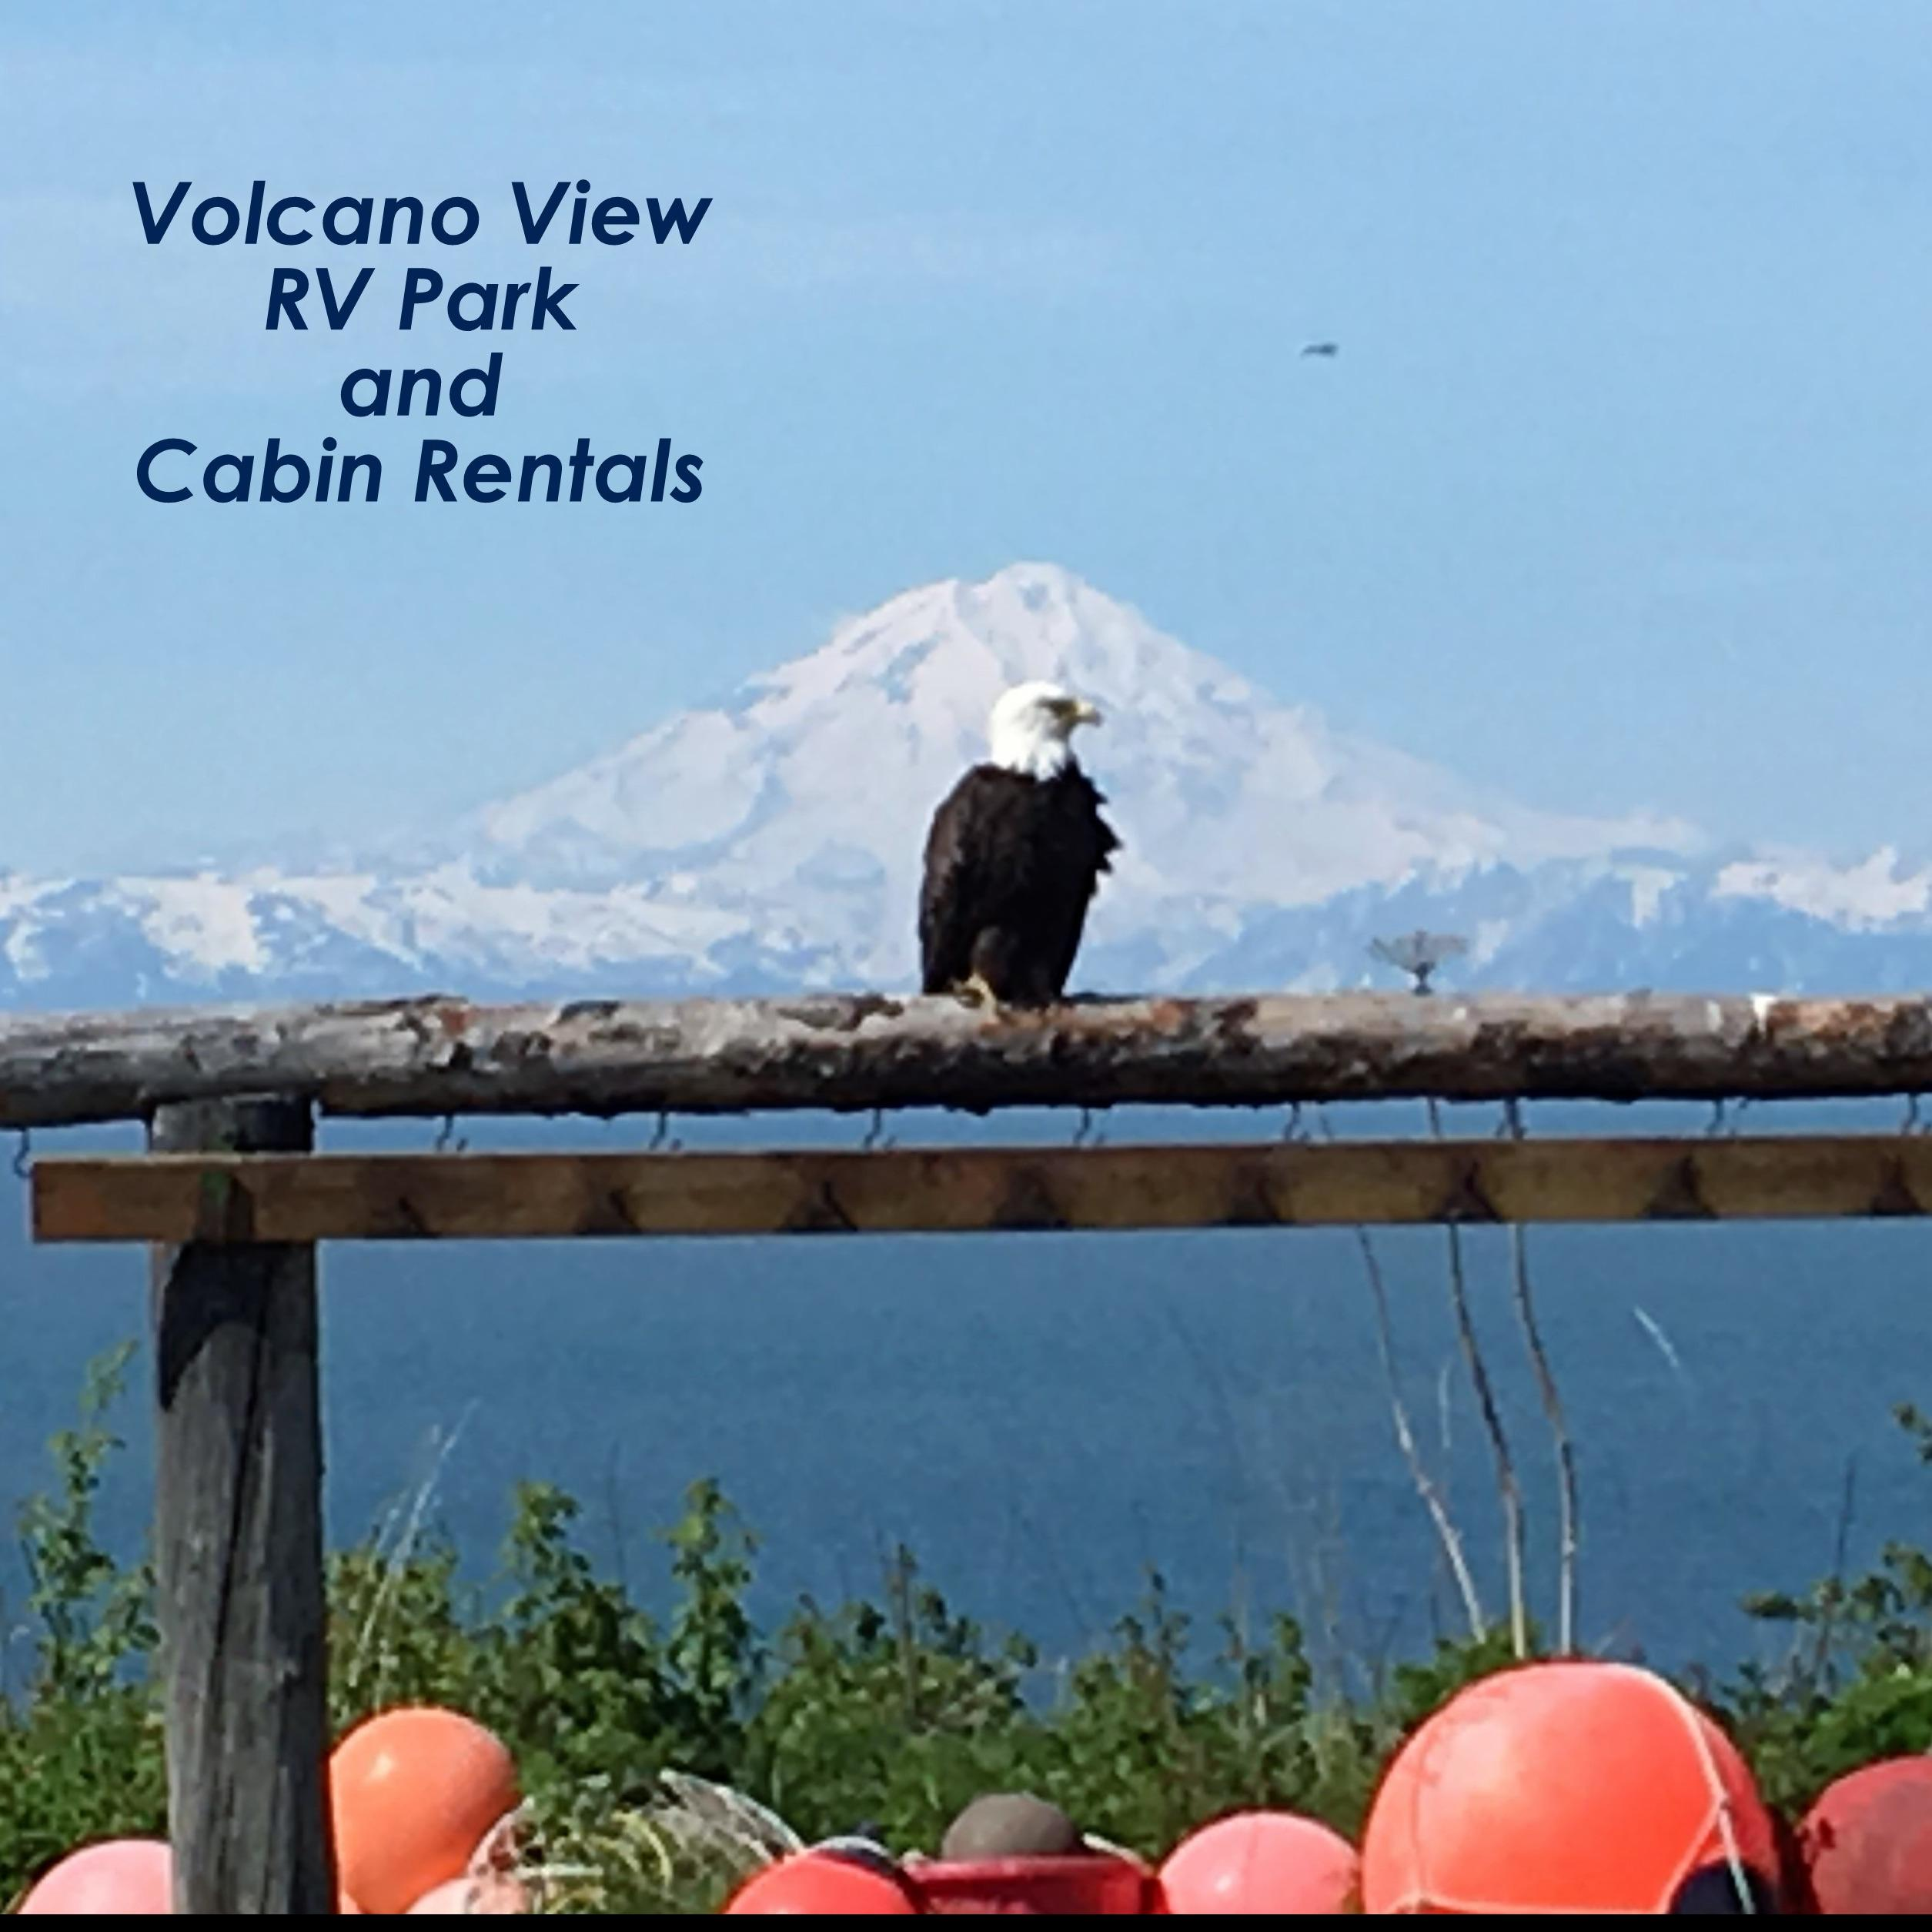 Volcano View Rv Park and Cabin Rentals